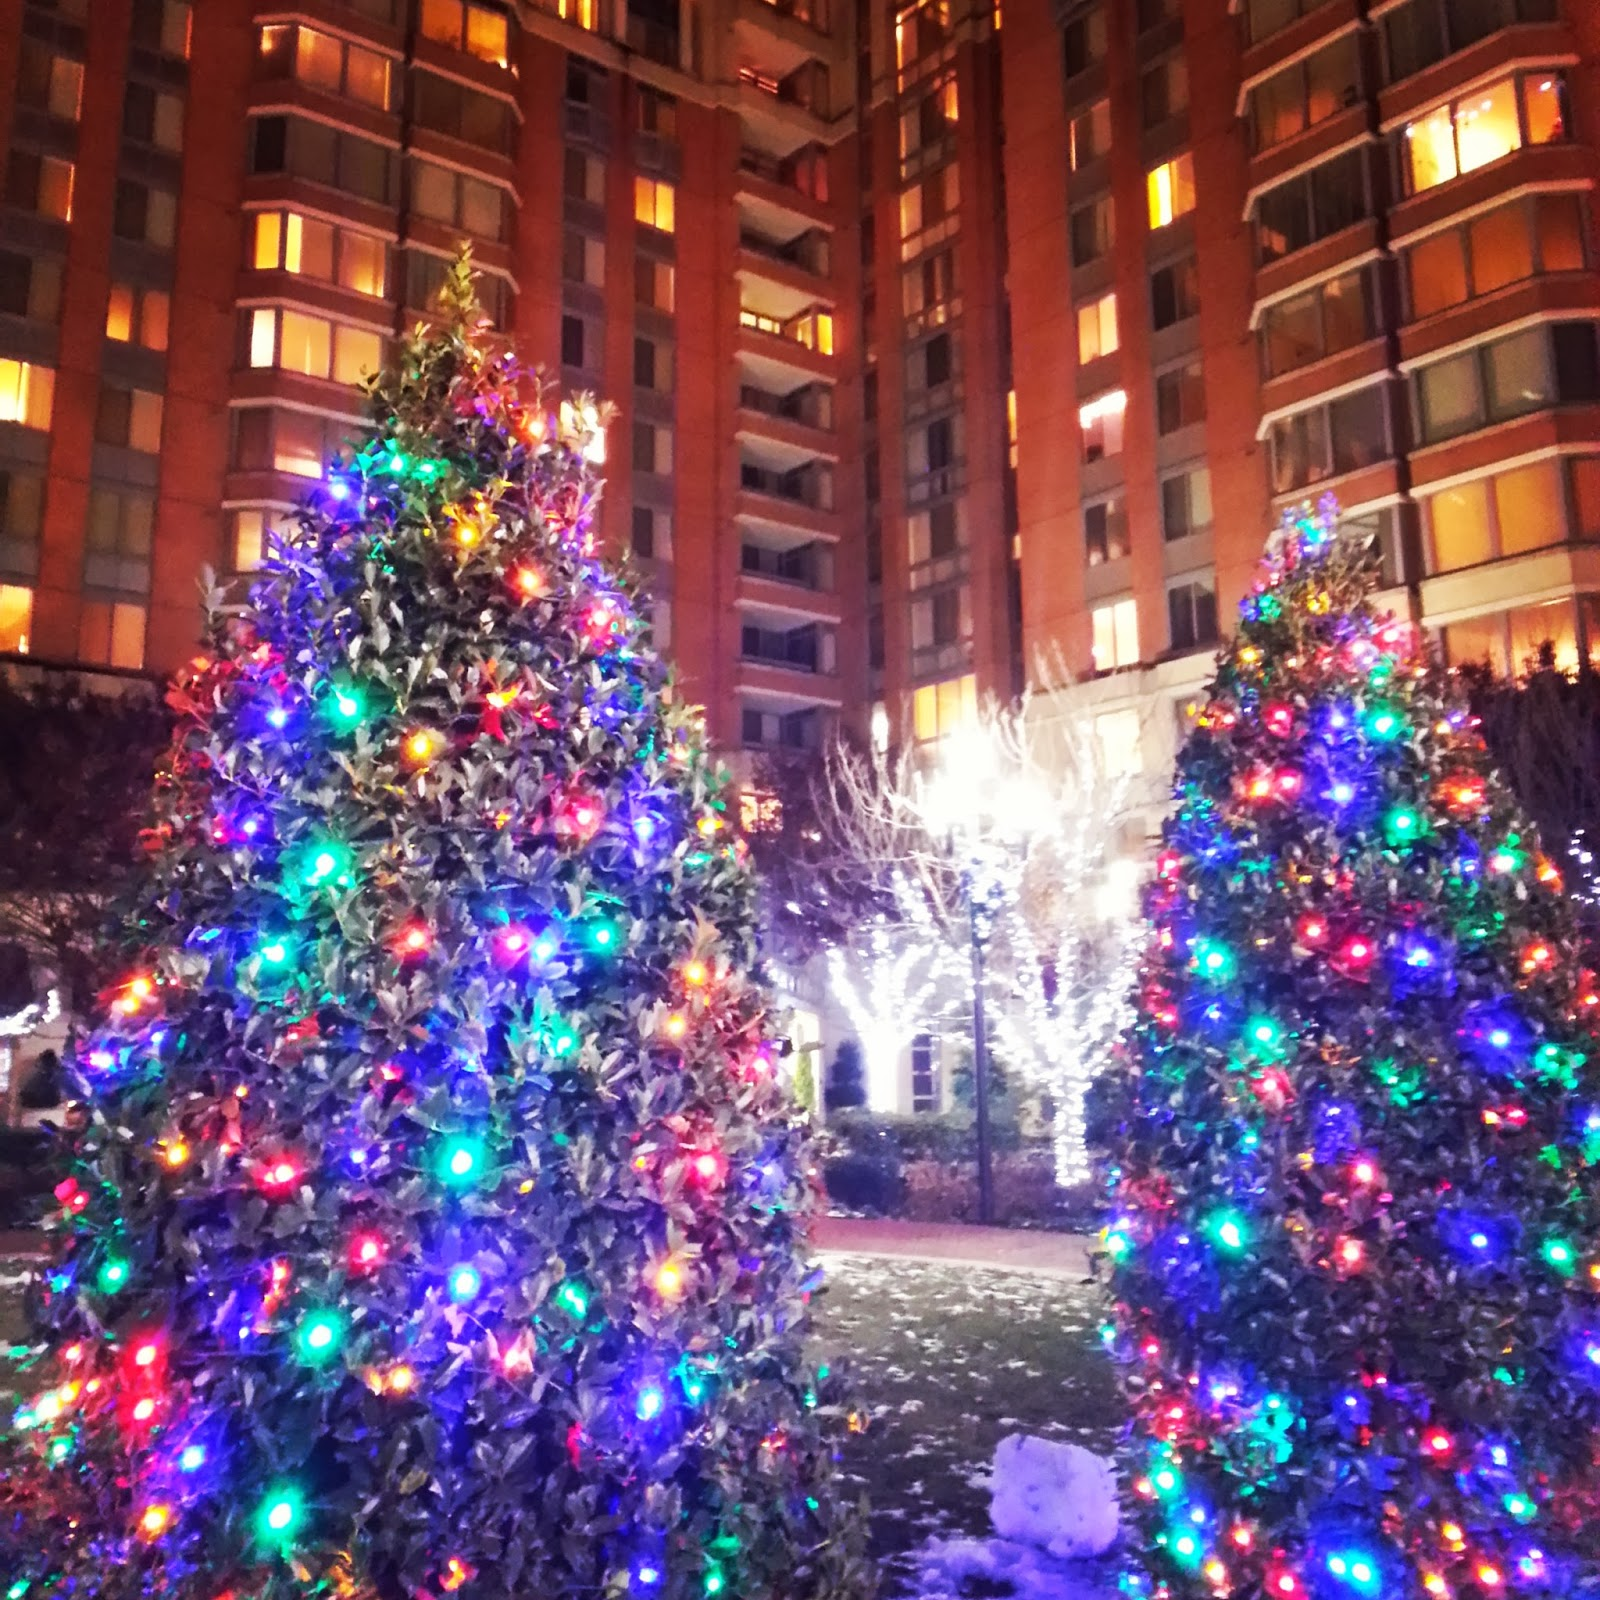 what restaurants are open for christmas dinner in bethesda the closure this coming weekend of du pars hamburger hamlet eliminates one christmas day dining - What Restaurant Are Open On Christmas